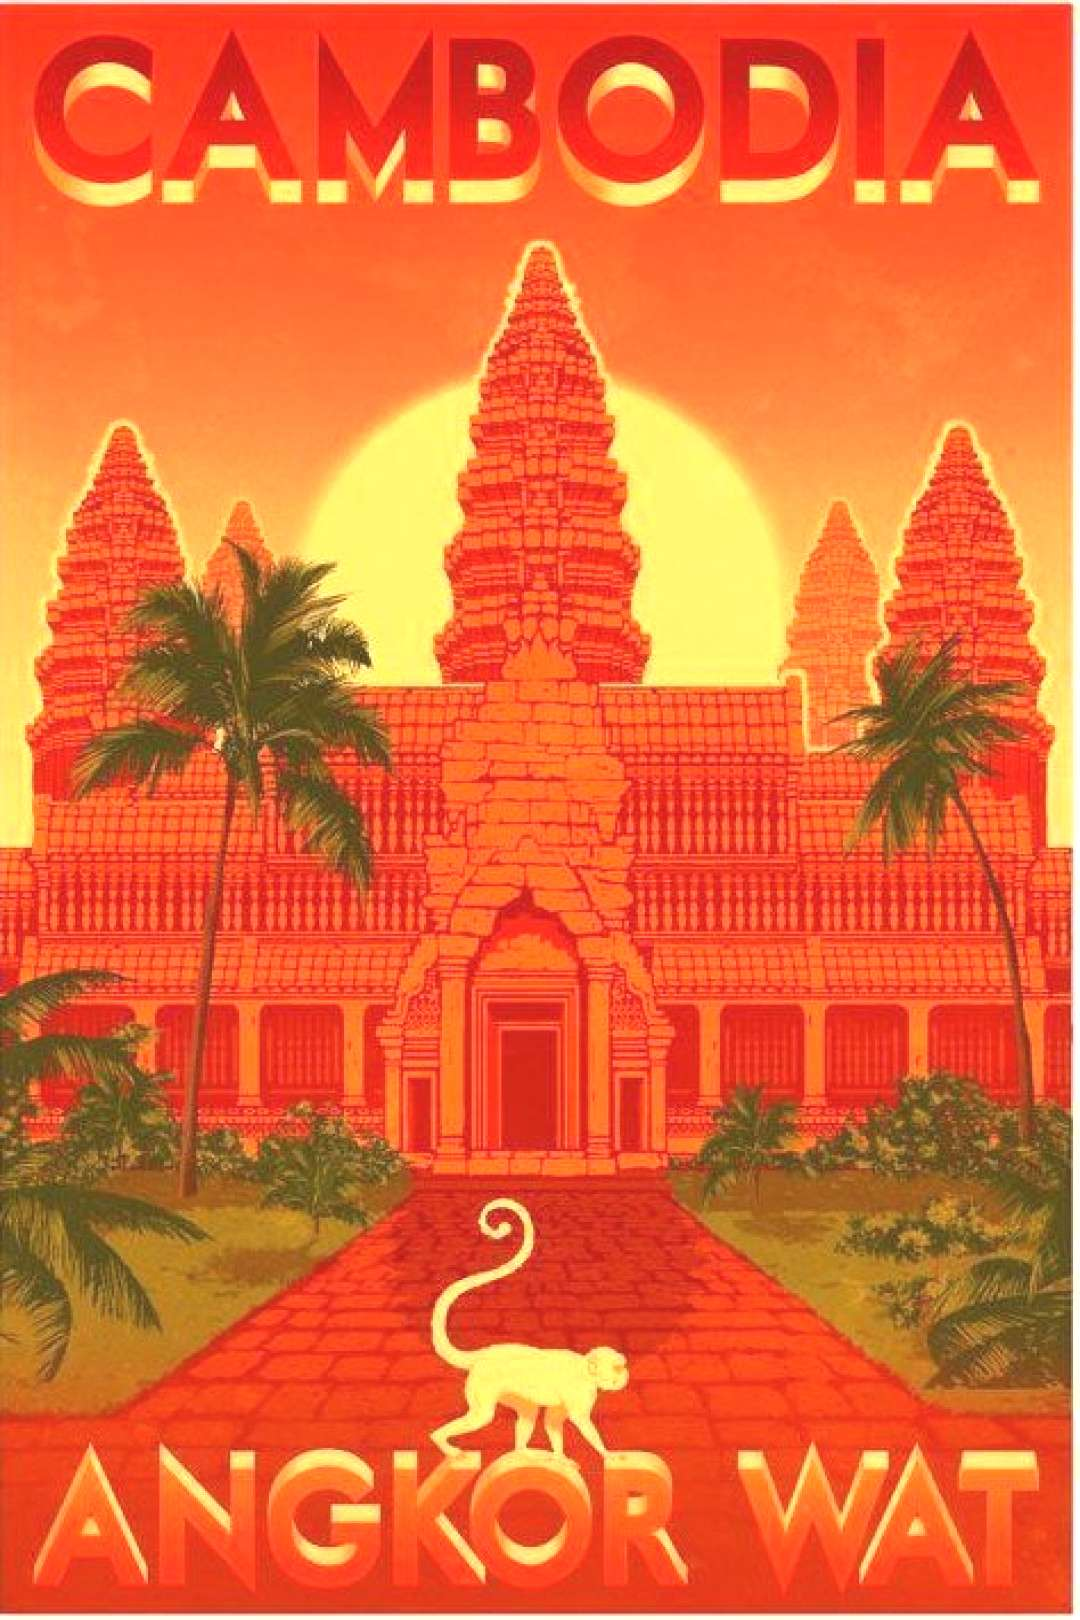 Vintage travel posters of Angkor Wat and Cambodia - Siem Reap Forum - Angkor Wat vintage travel po